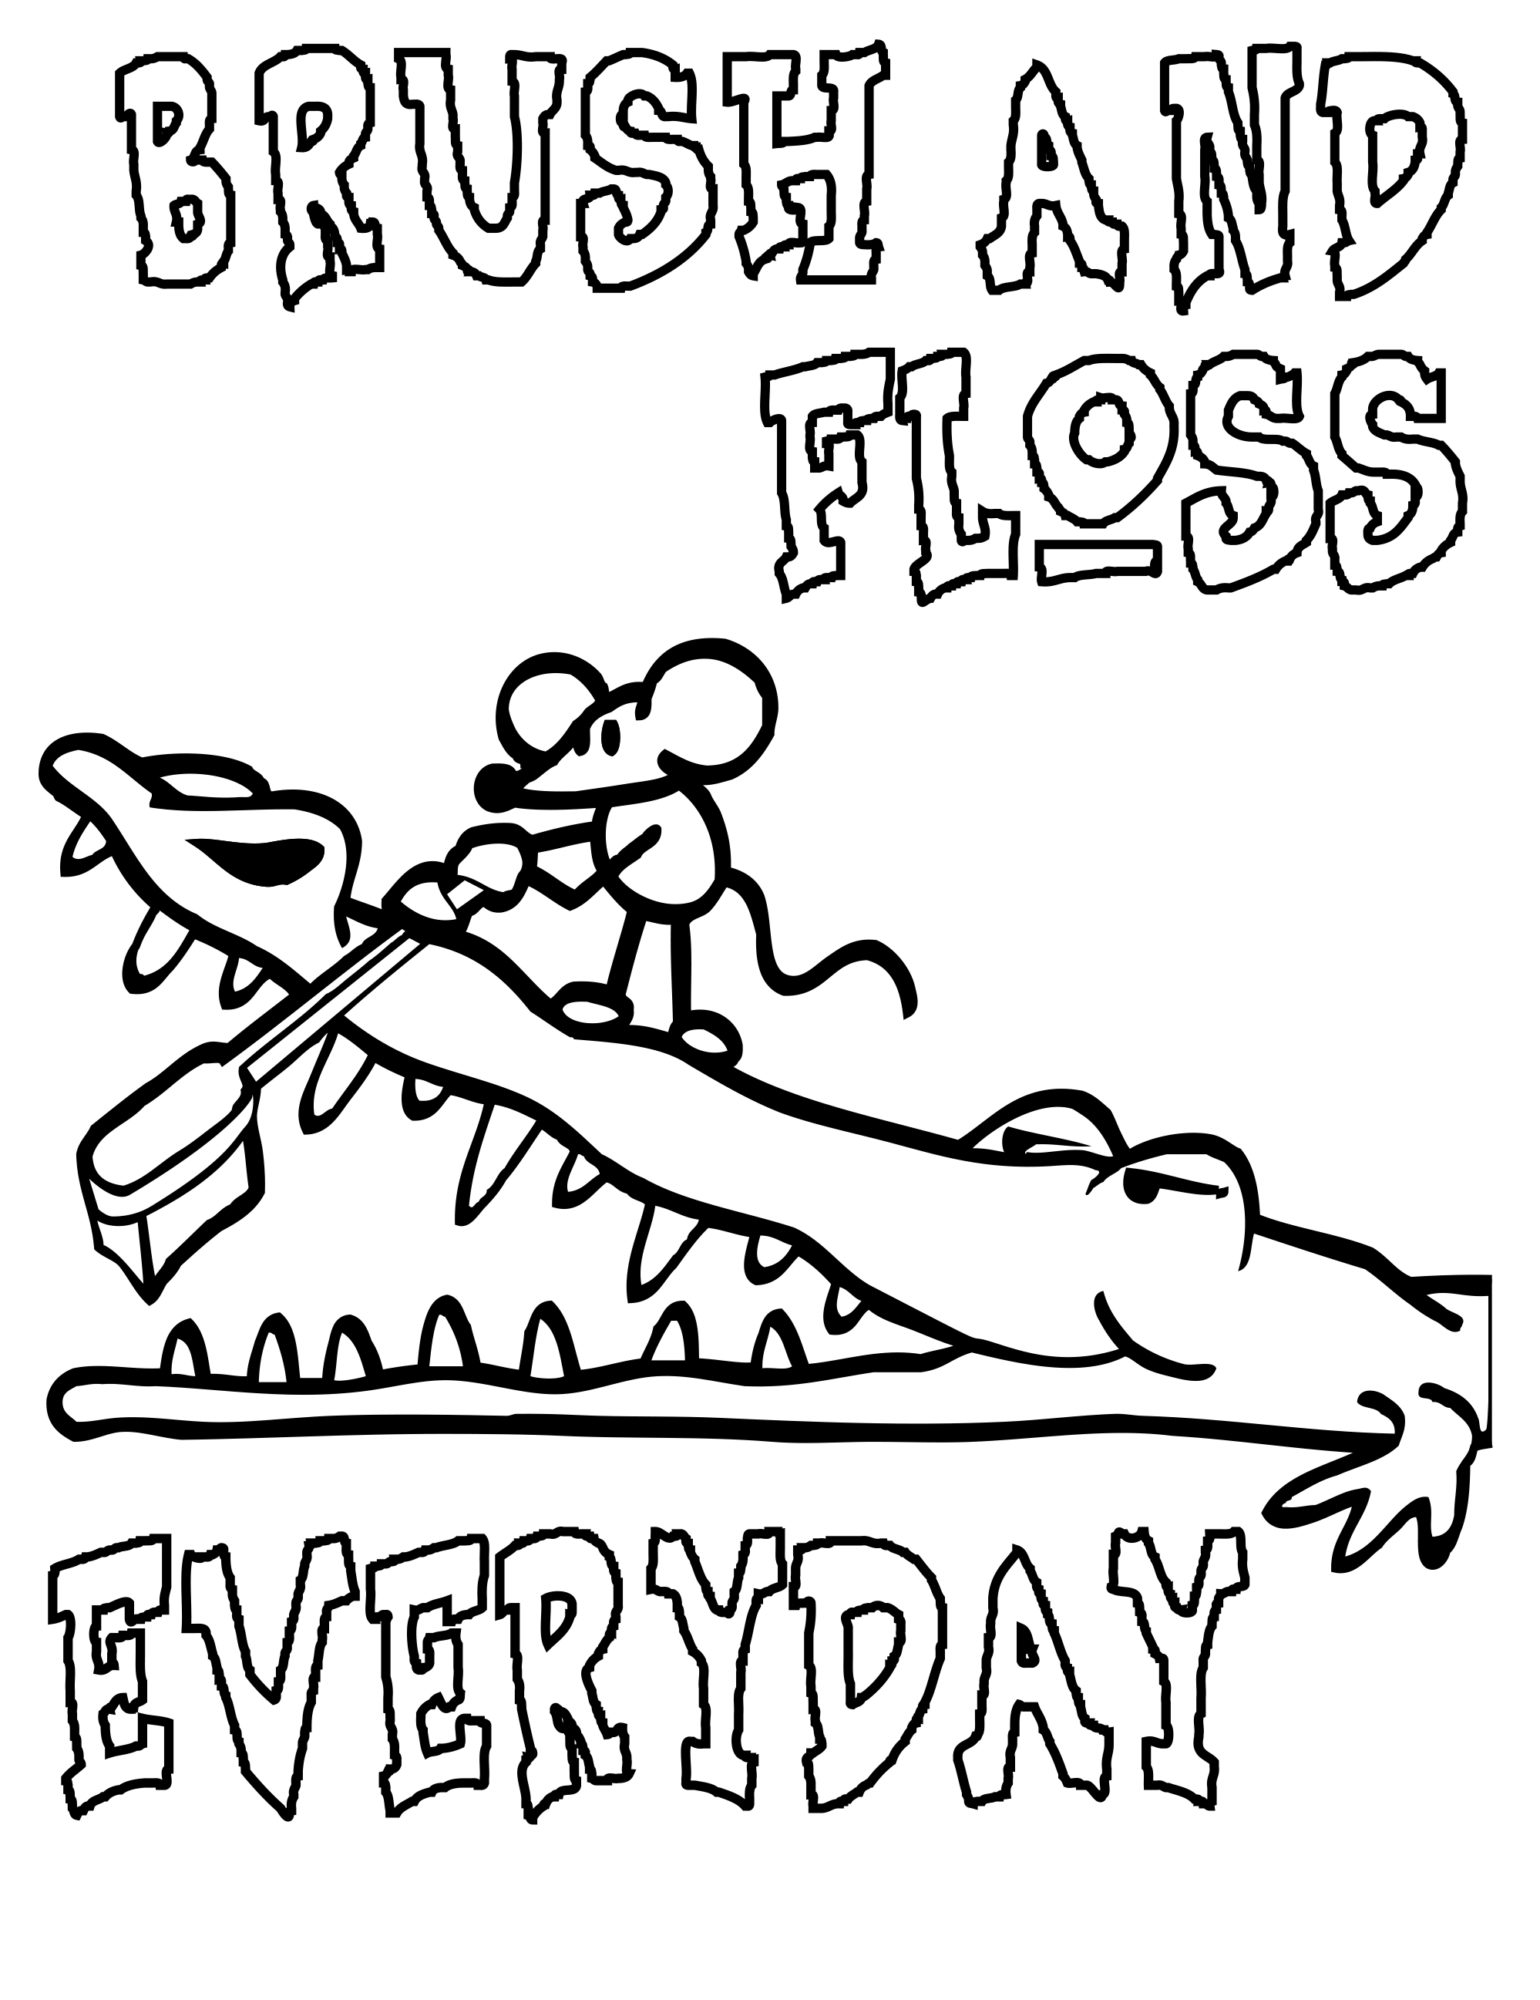 Colouring in pages dental - Coloring Pages